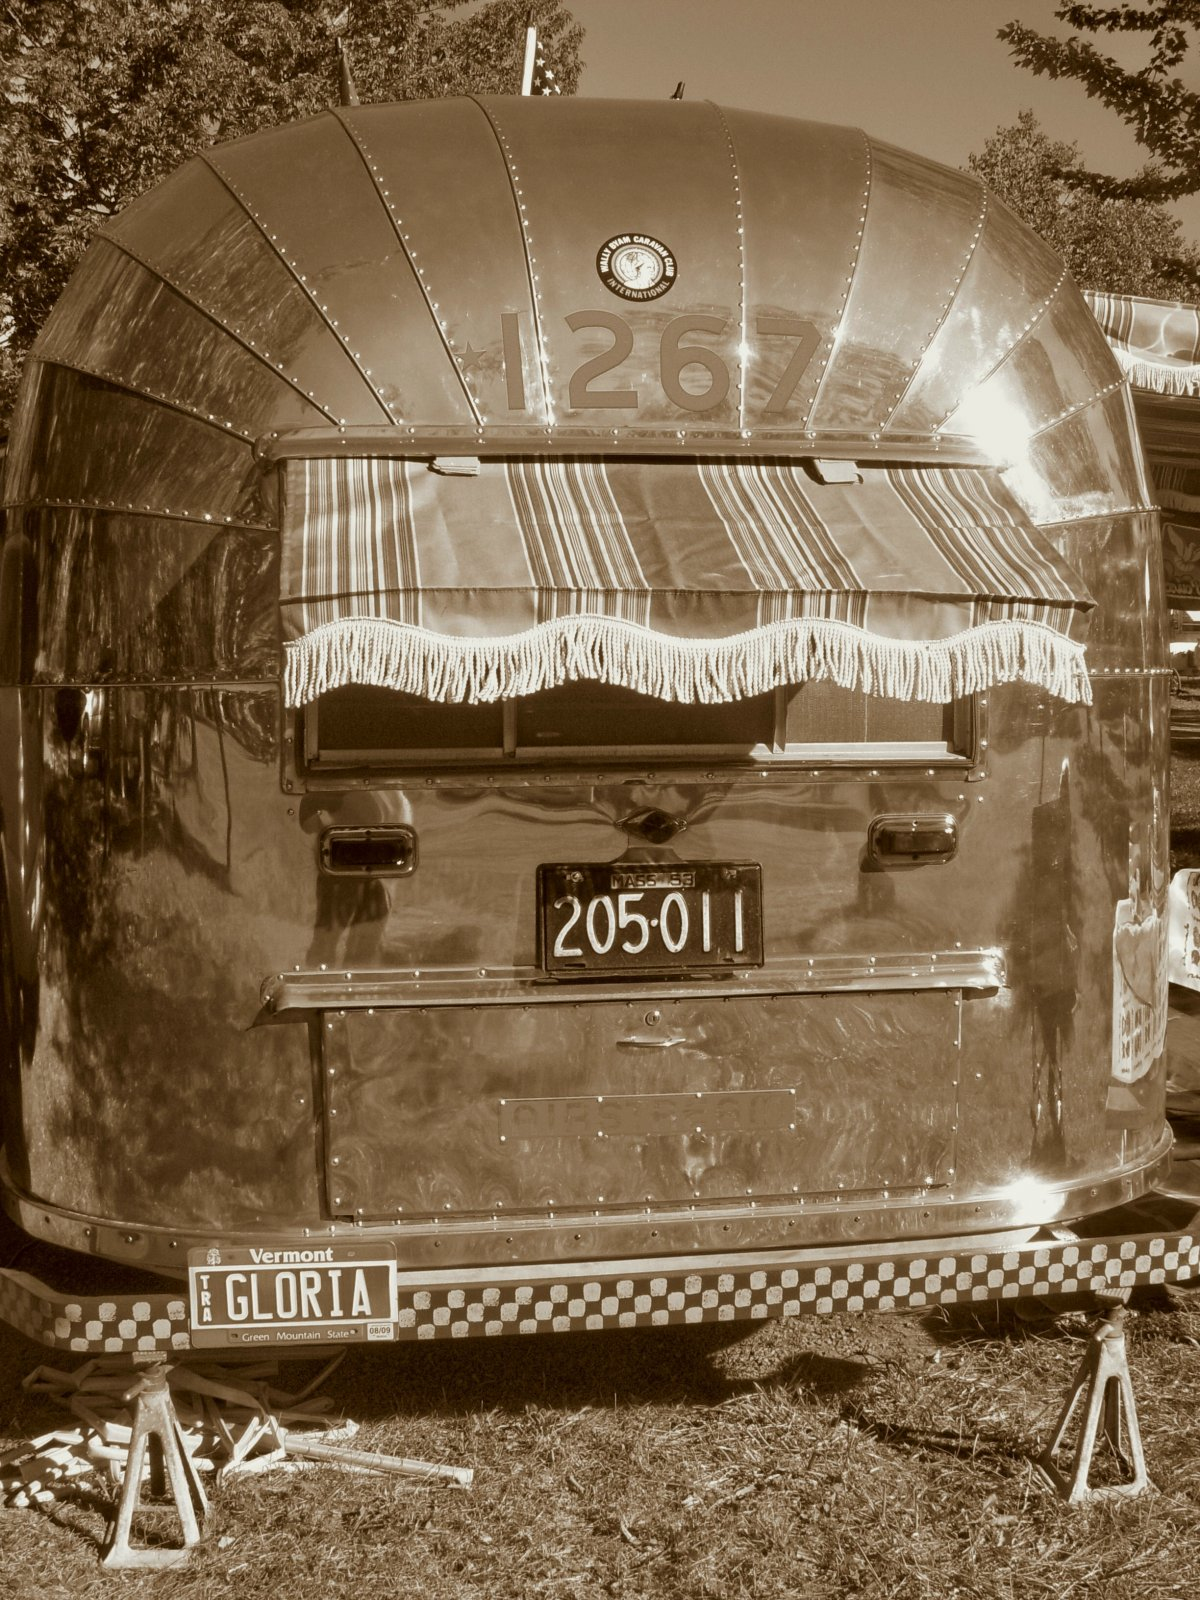 Click image for larger version  Name:back of 53 sepia.jpg Views:91 Size:445.8 KB ID:103247